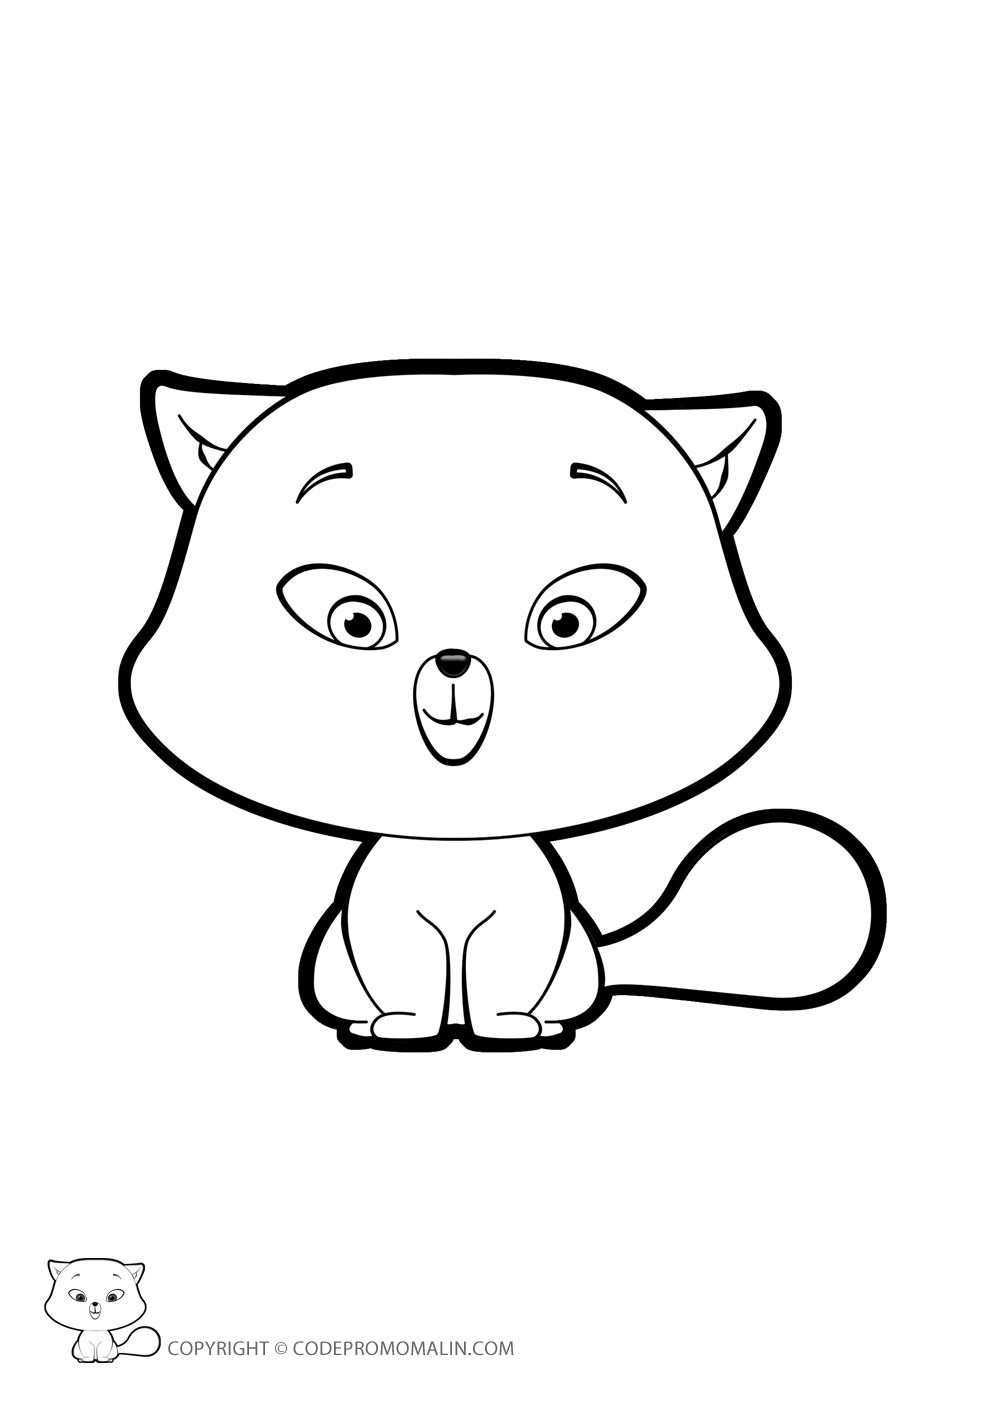 260 dessins de coloriage chat imprimer sur page 16 - Tete de chat a colorier ...